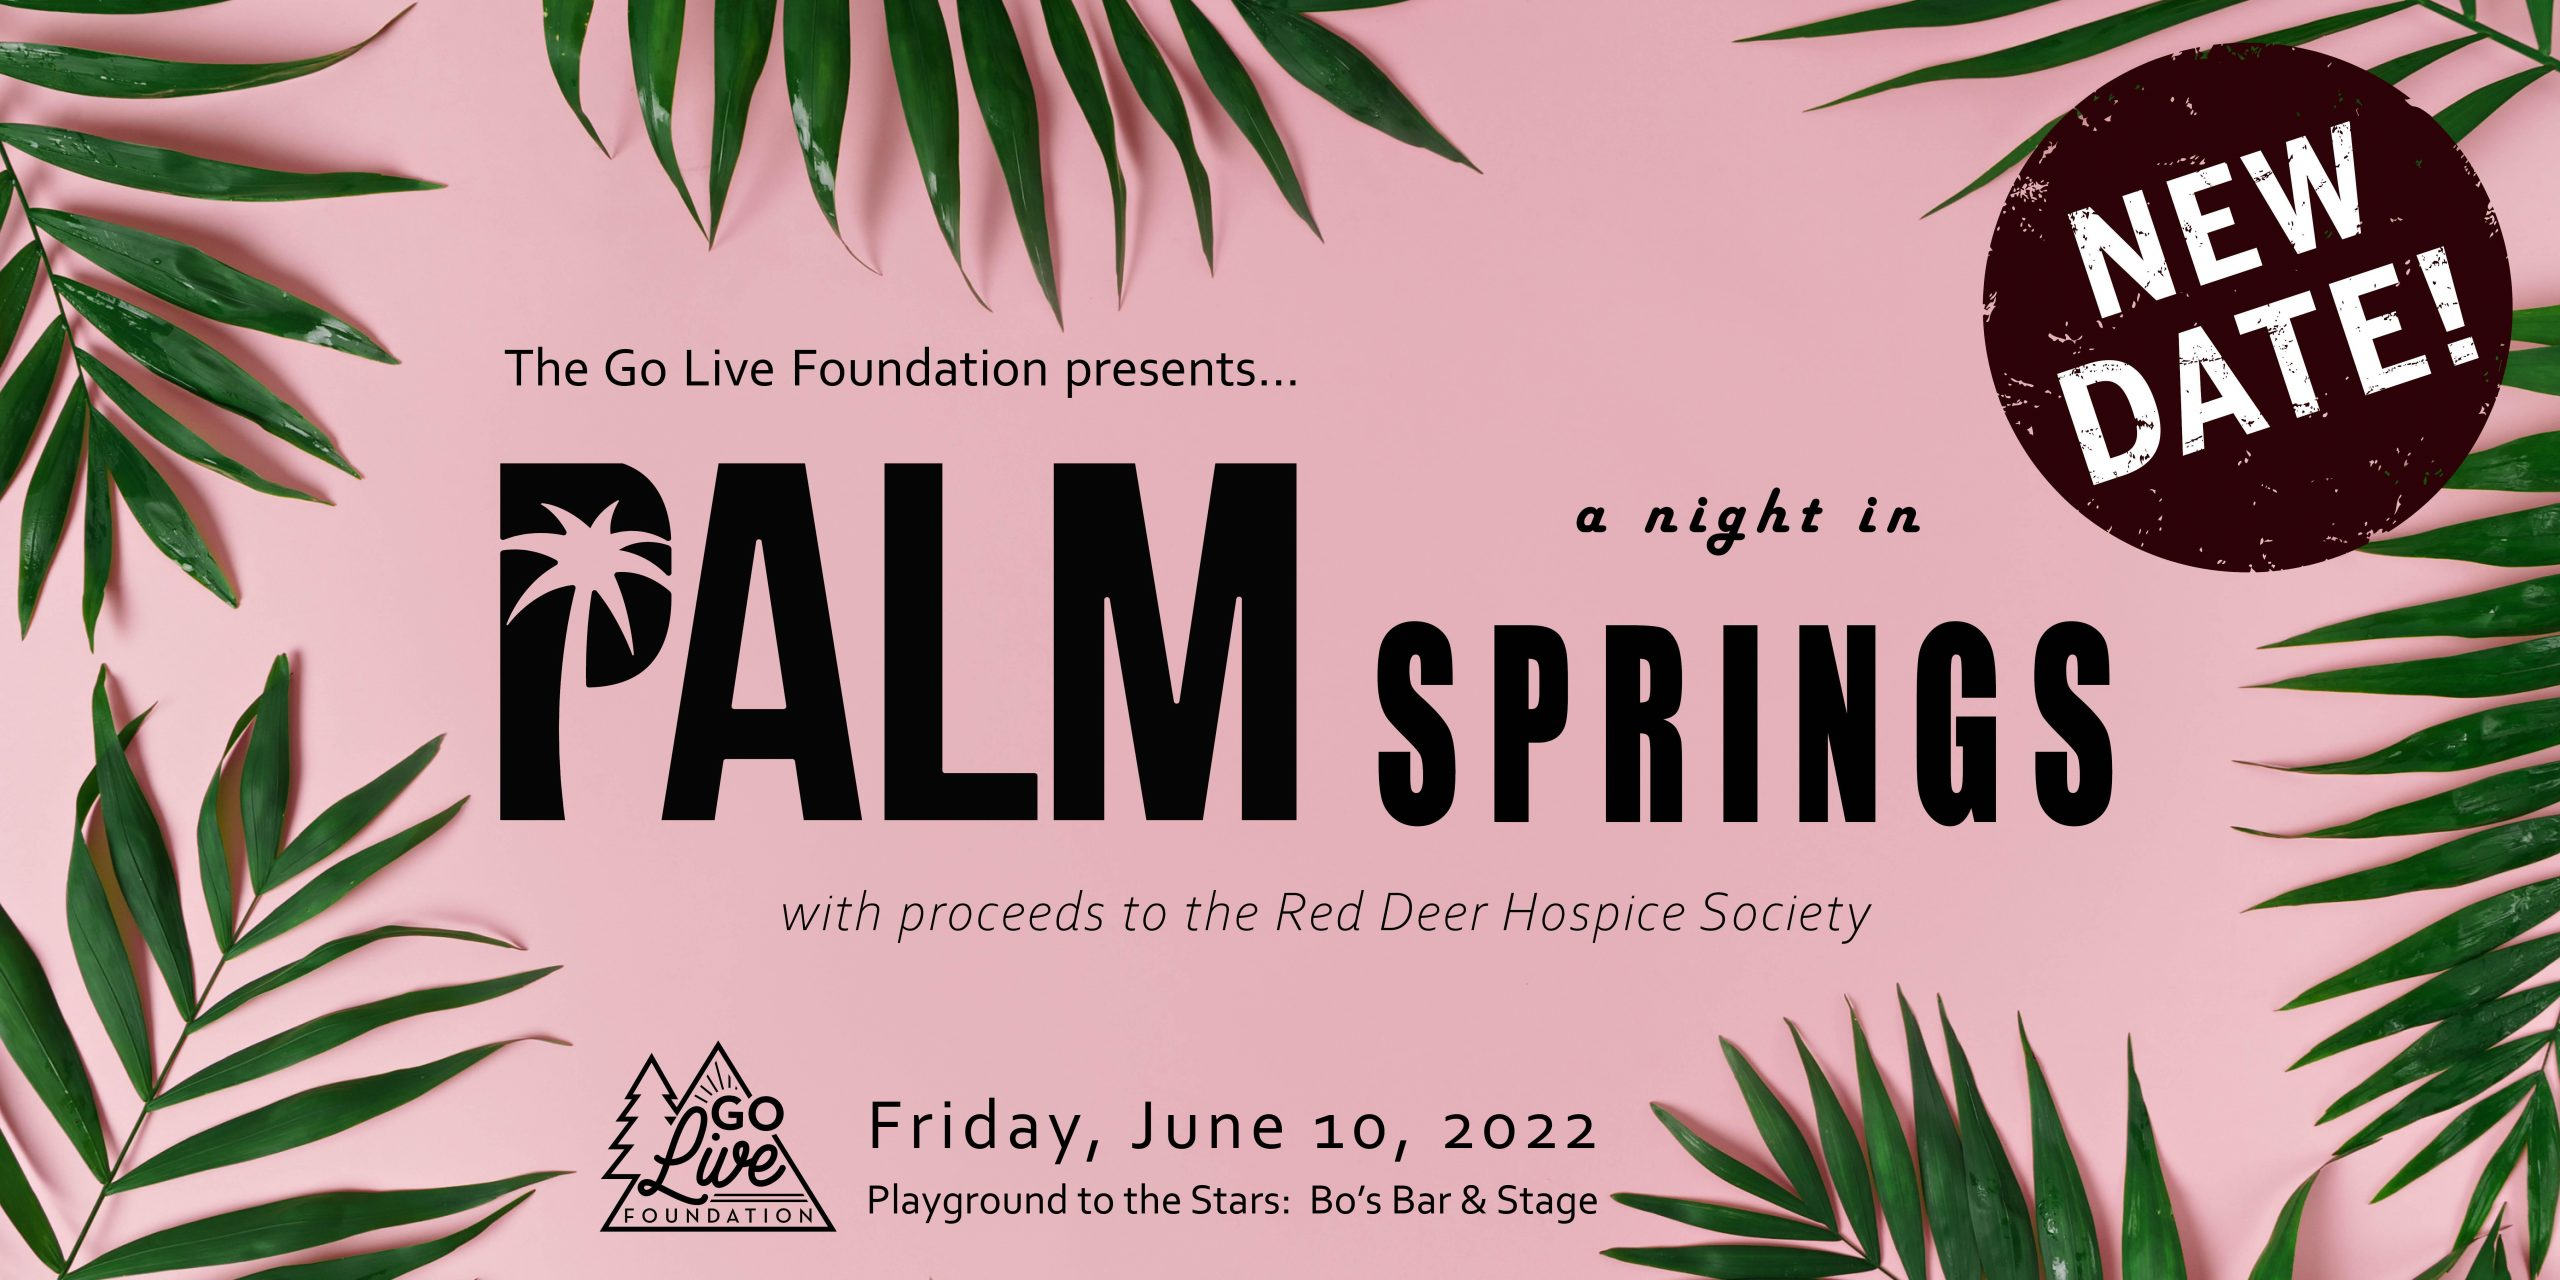 A NIGHT IN PALM SPRINGS